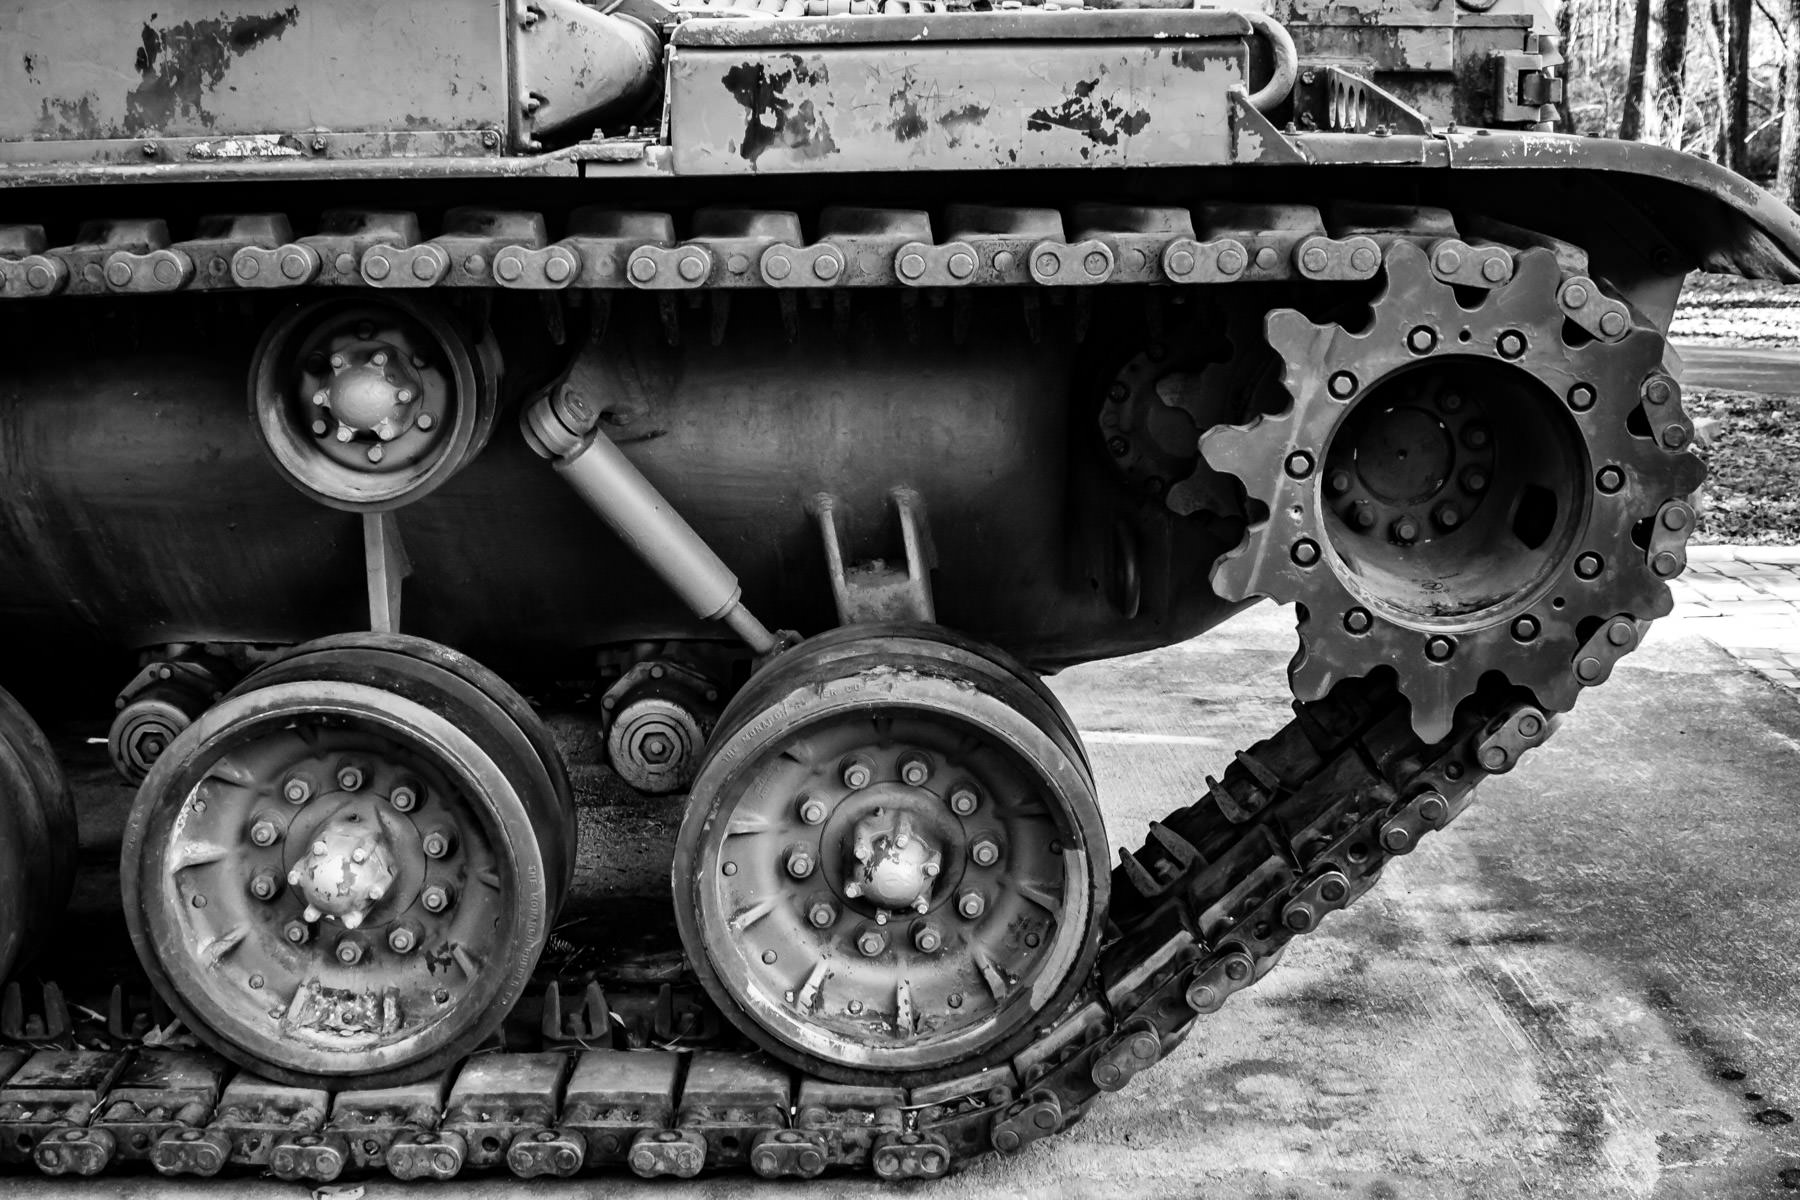 Detail of a tank in a Hot Springs, Arkansas park.